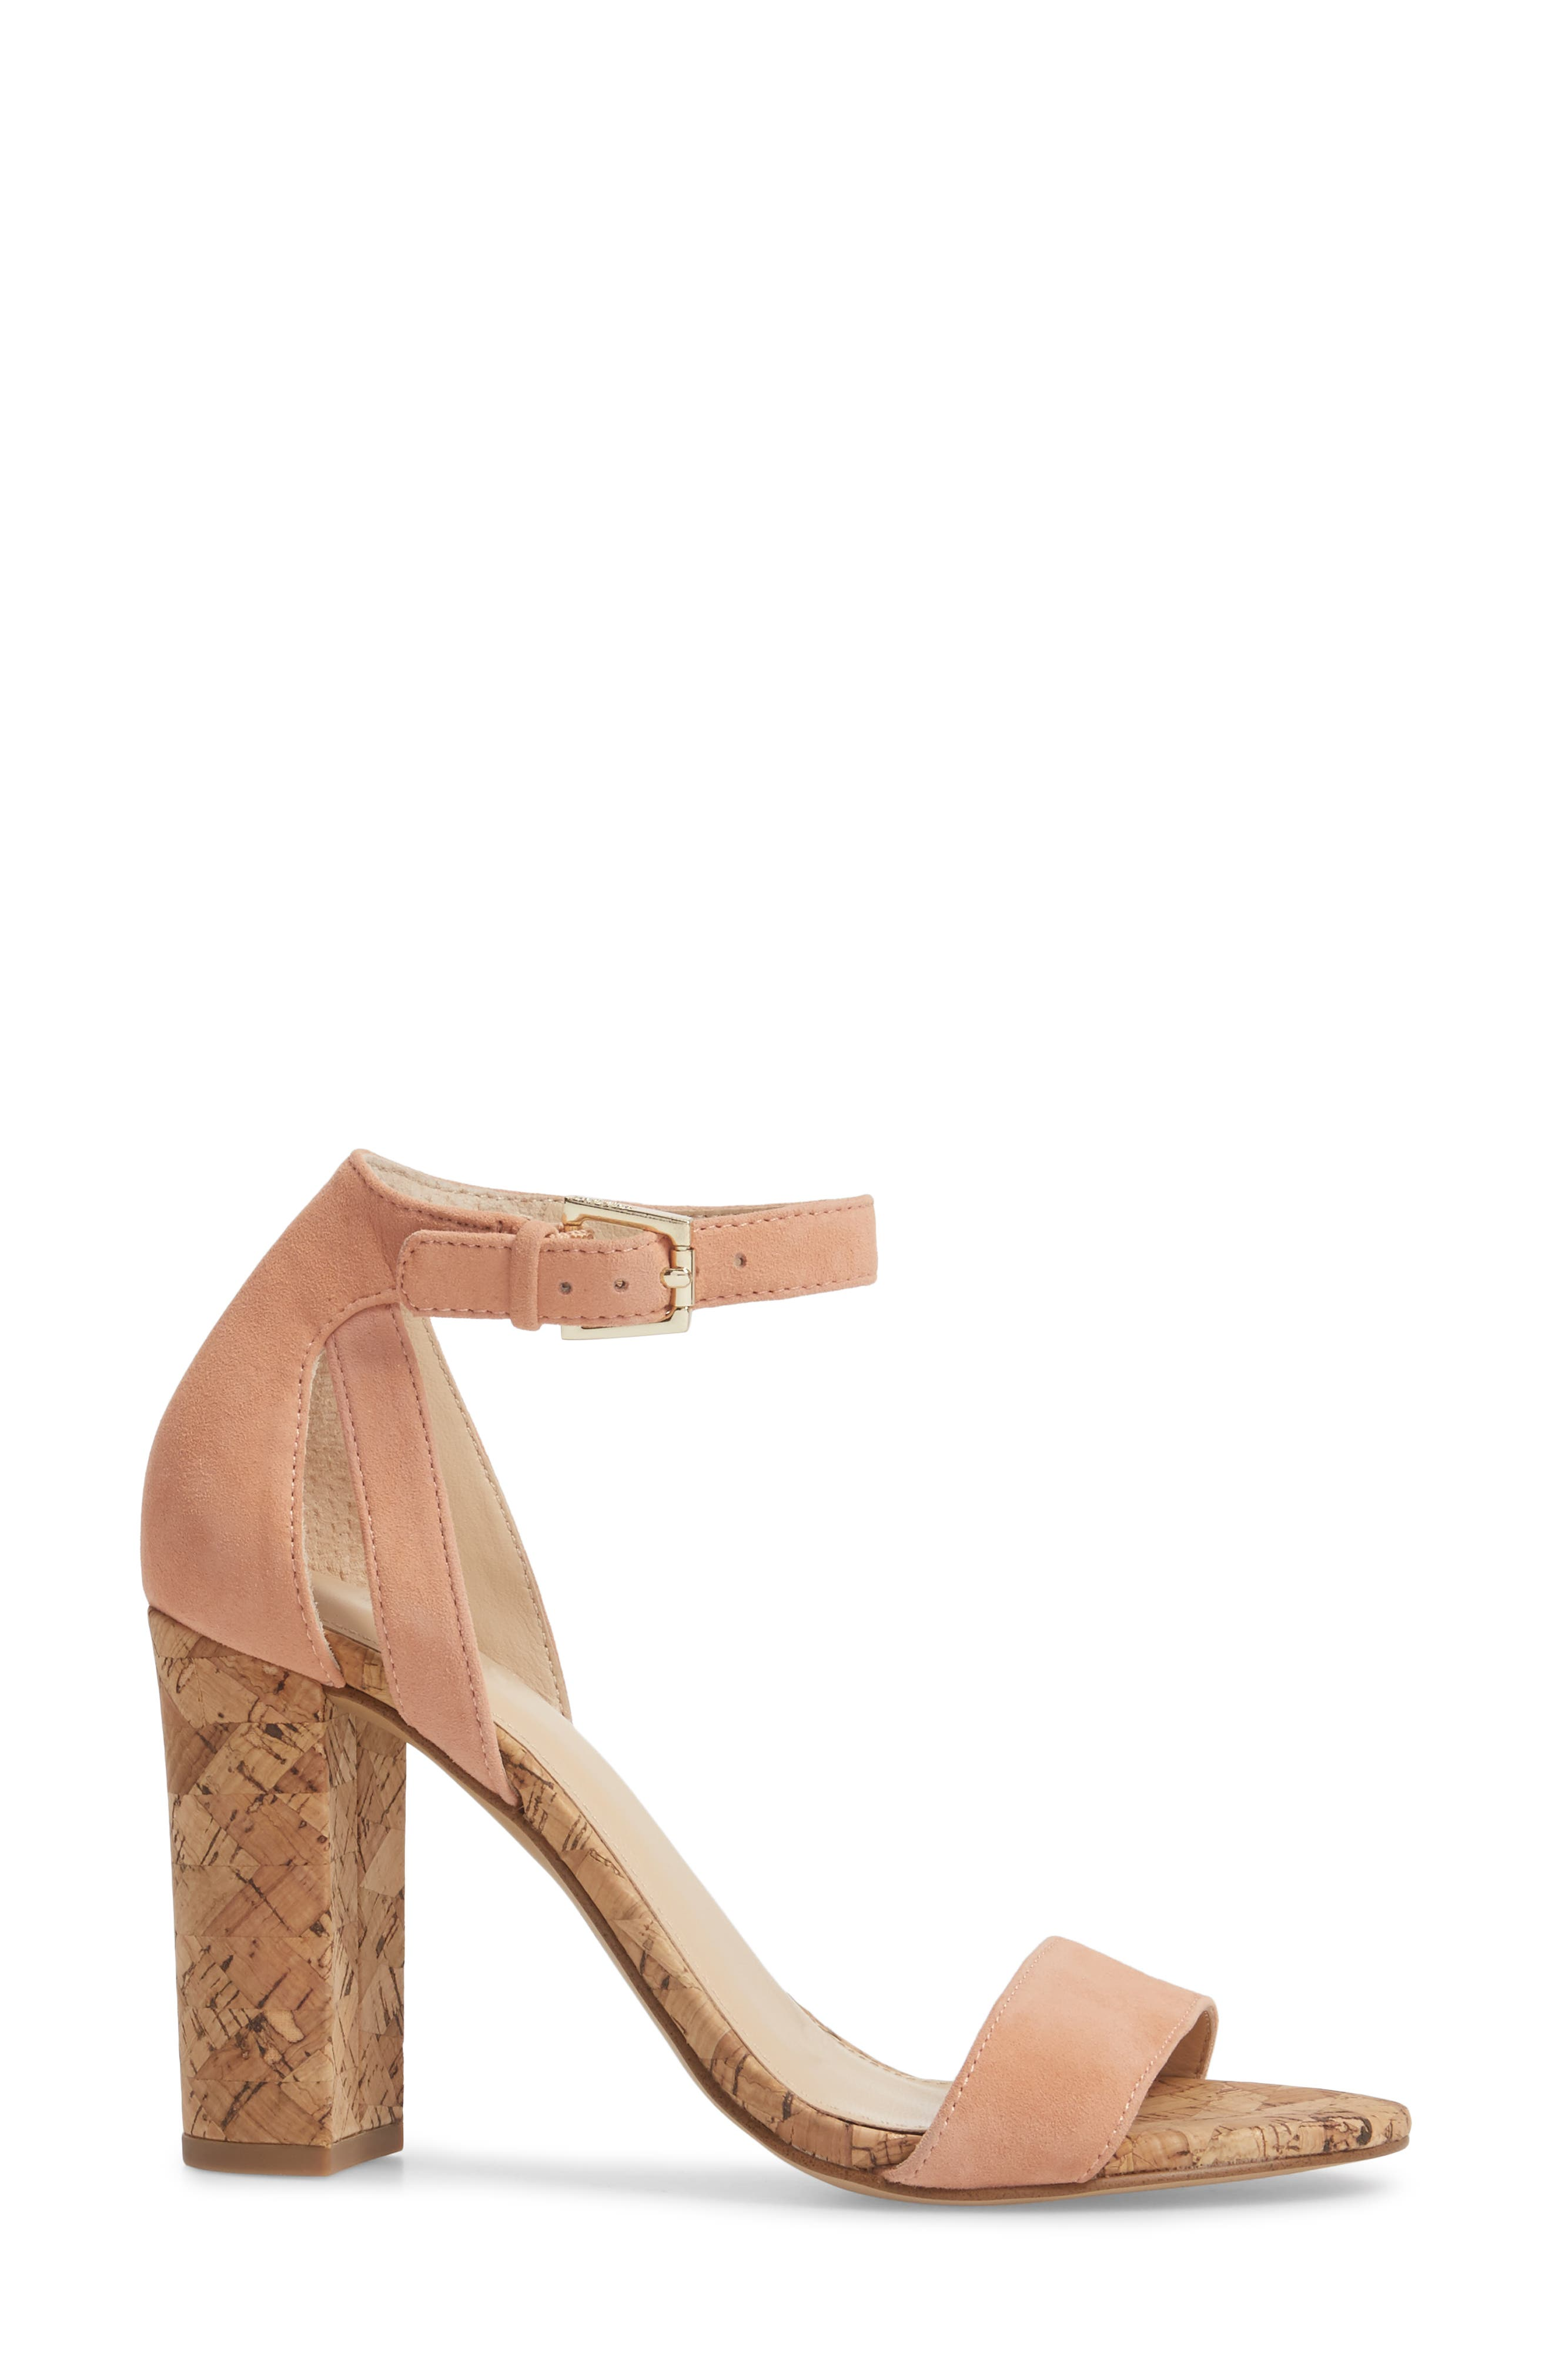 Gianna Ankle Strap Sandal,                             Alternate thumbnail 3, color,                             Soft Peach Suede